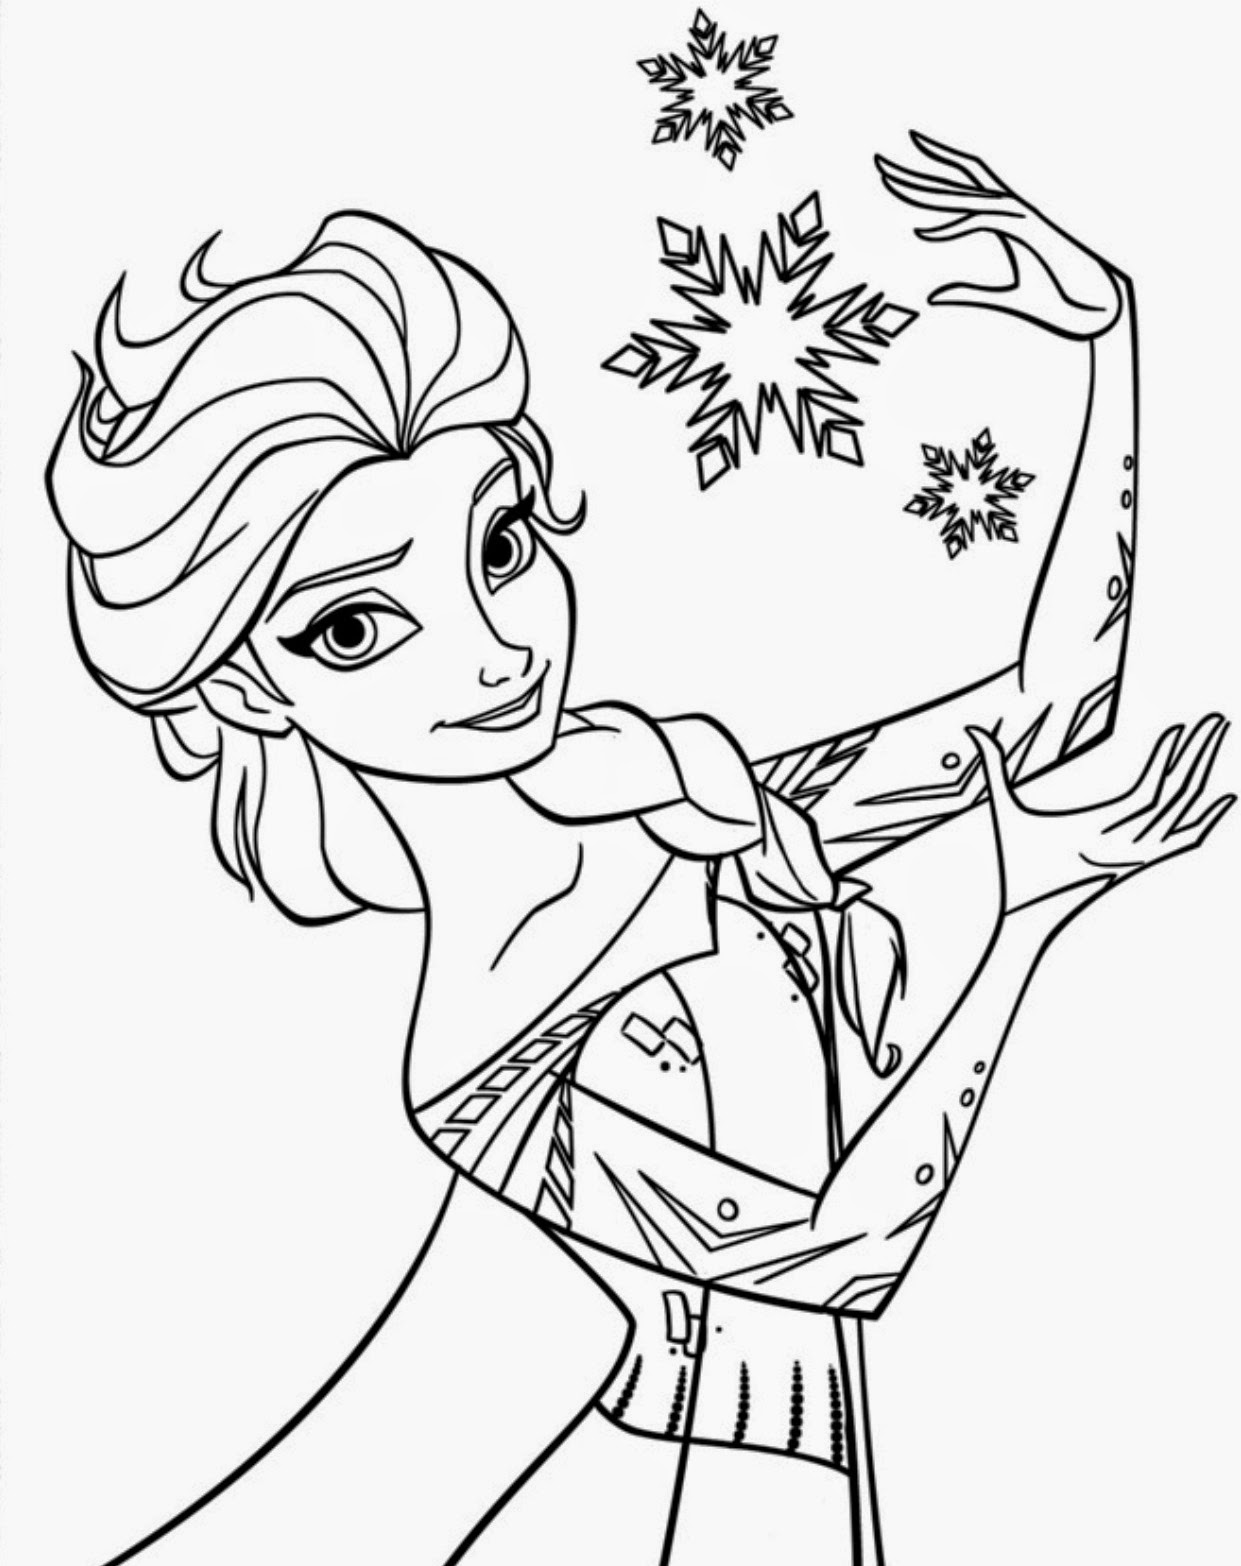 free coloring disney pages | 15 Beautiful Disney Frozen Coloring Pages Free ~ Instant ...